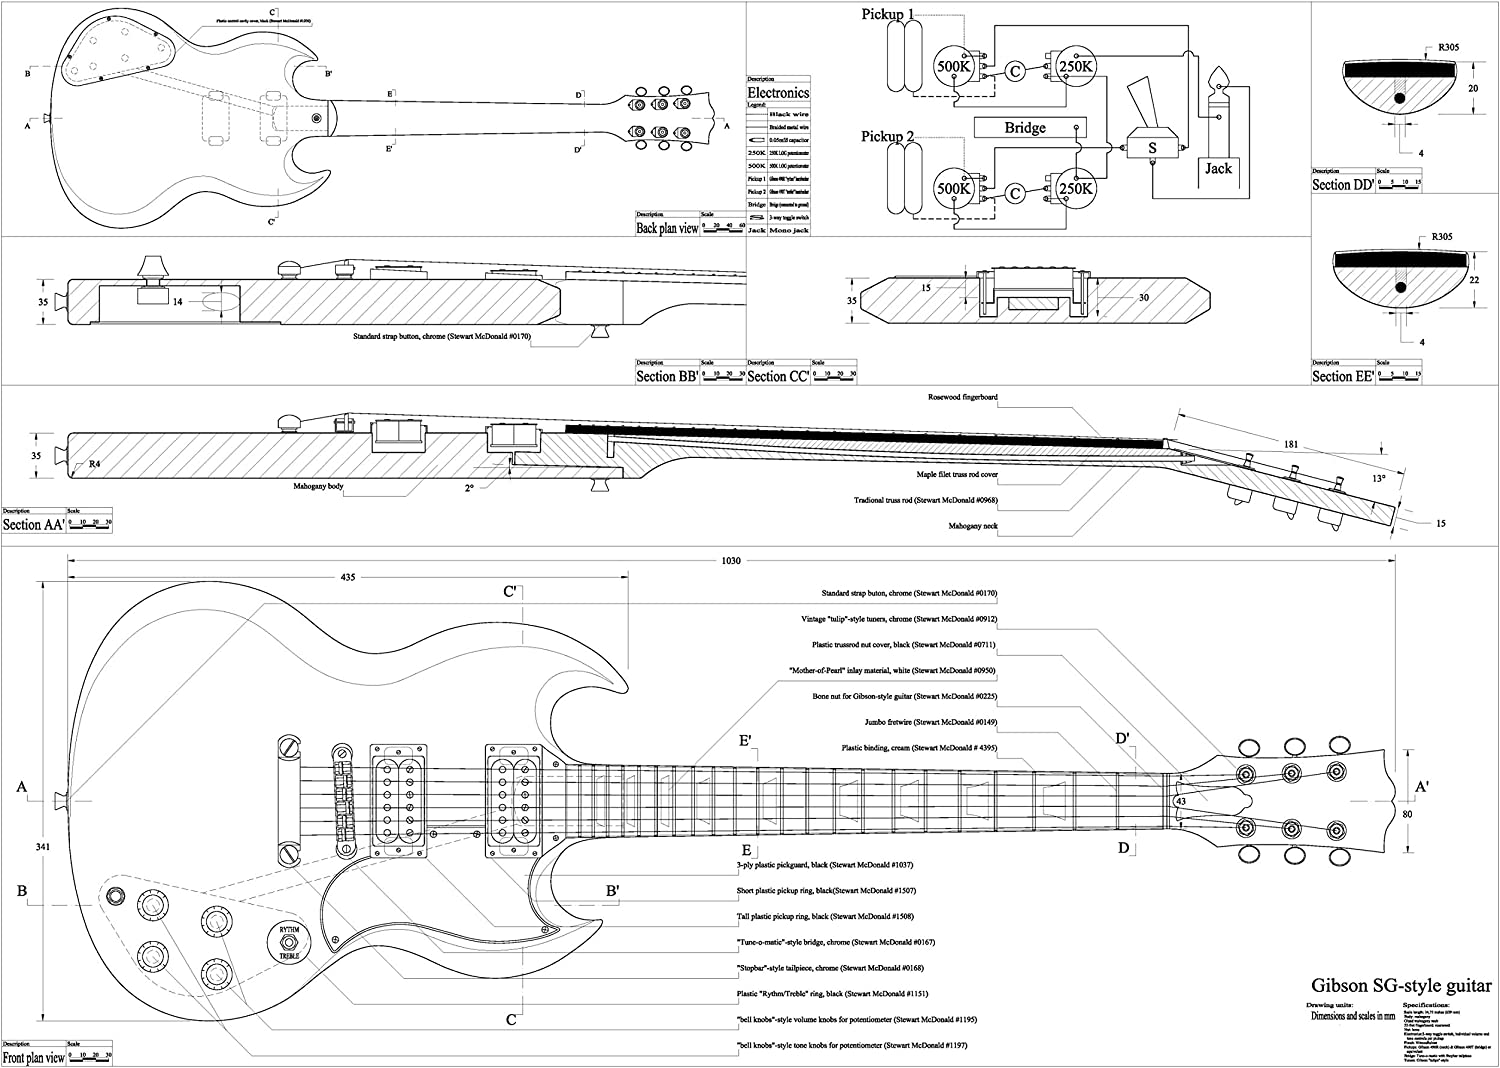 Wiring Diagram For Gibson Sg